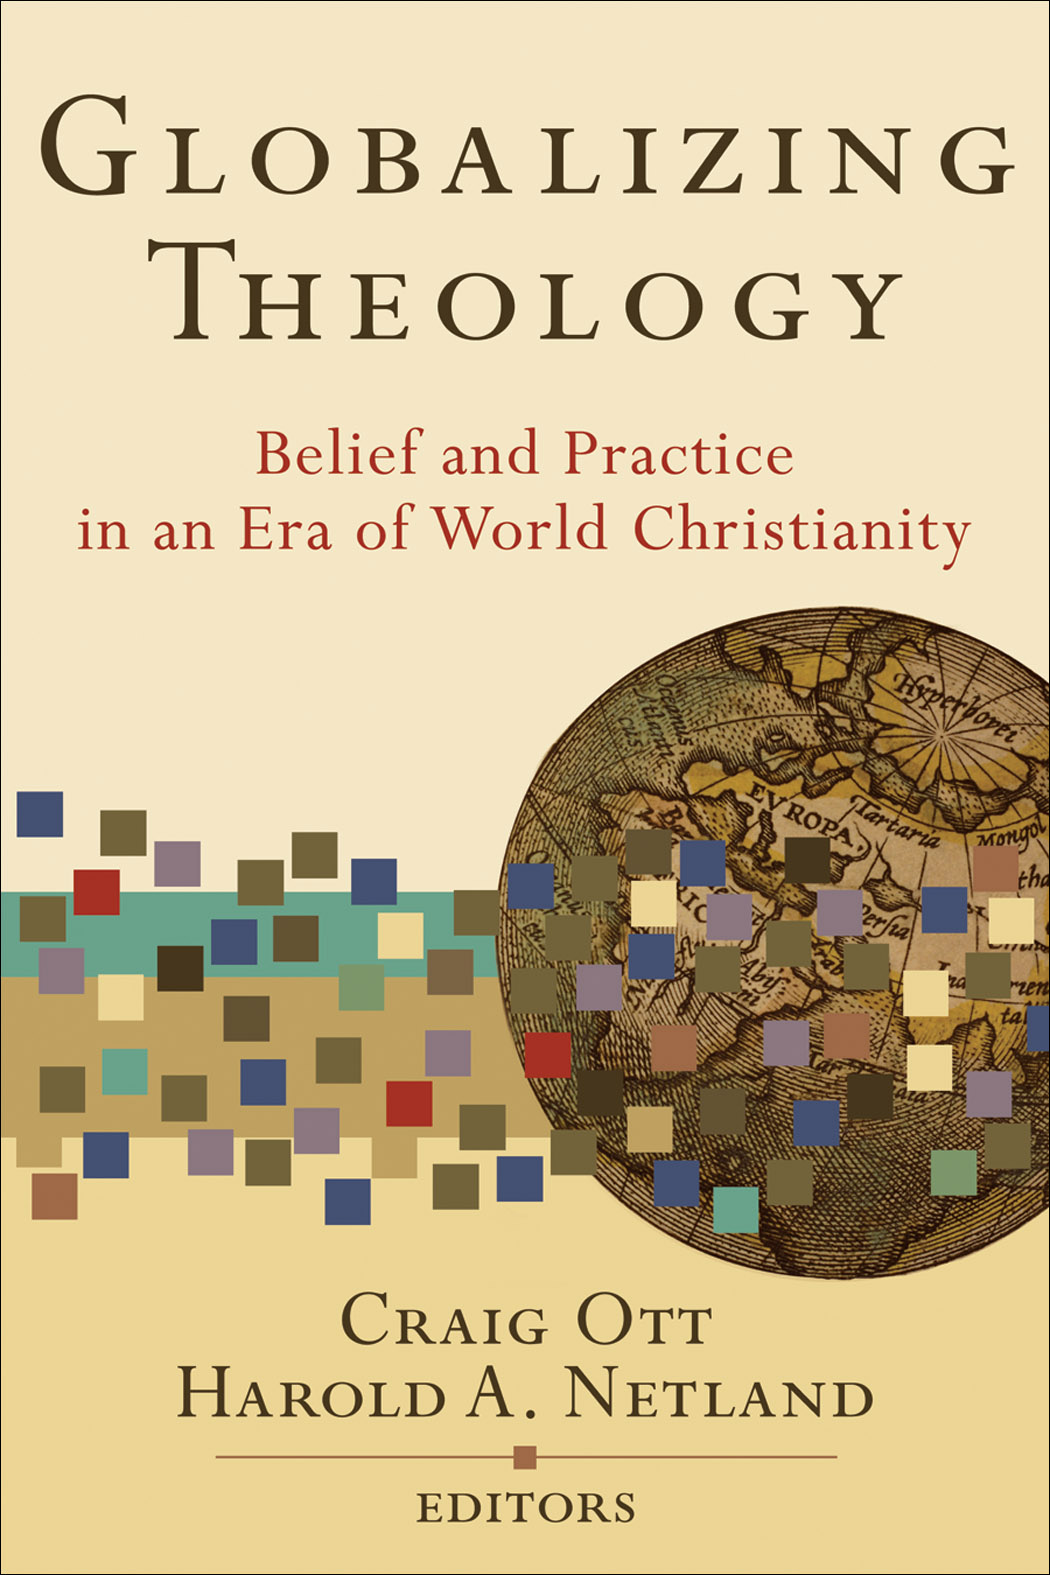 Where can I publish an academic research paper on Christian Theology without a literary agent?